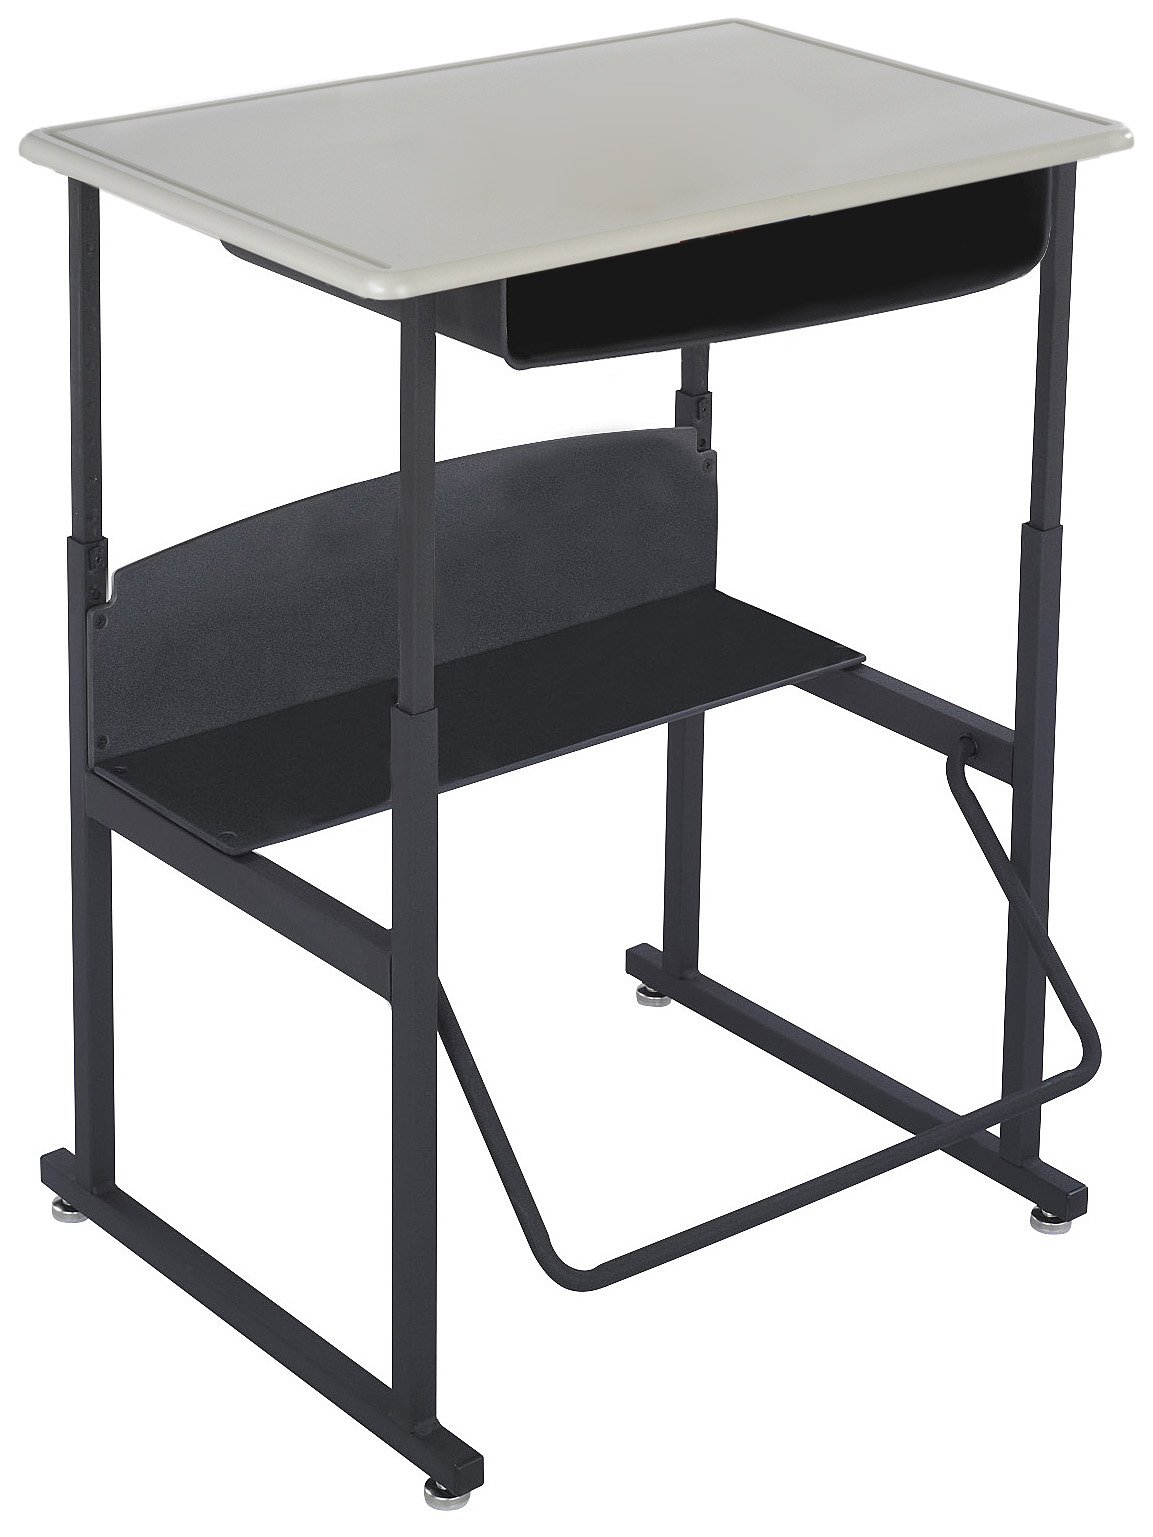 Safco Products 1202BE Alphabetter Stand-Up Desk with Swinging Footrest Bar, 28'' x 20'' Standard Top with Book Box, Black Frame/Beige Top